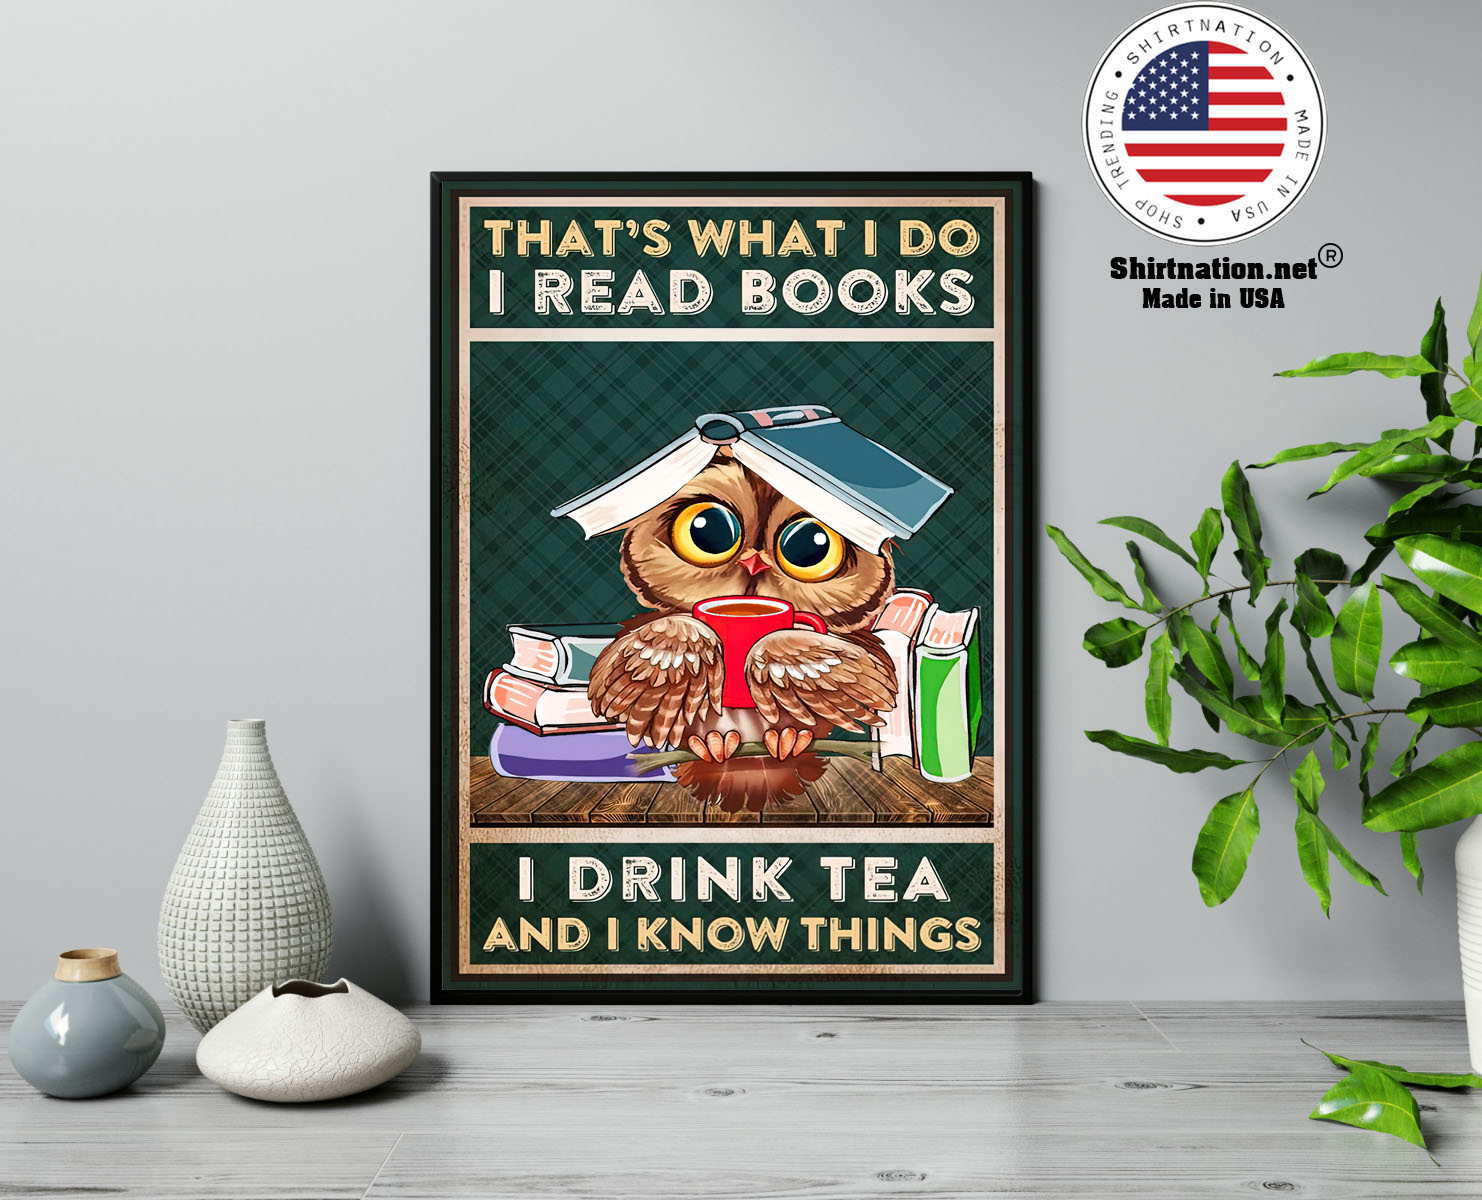 Thats what I do I read books I drink tea and I know things poster 13